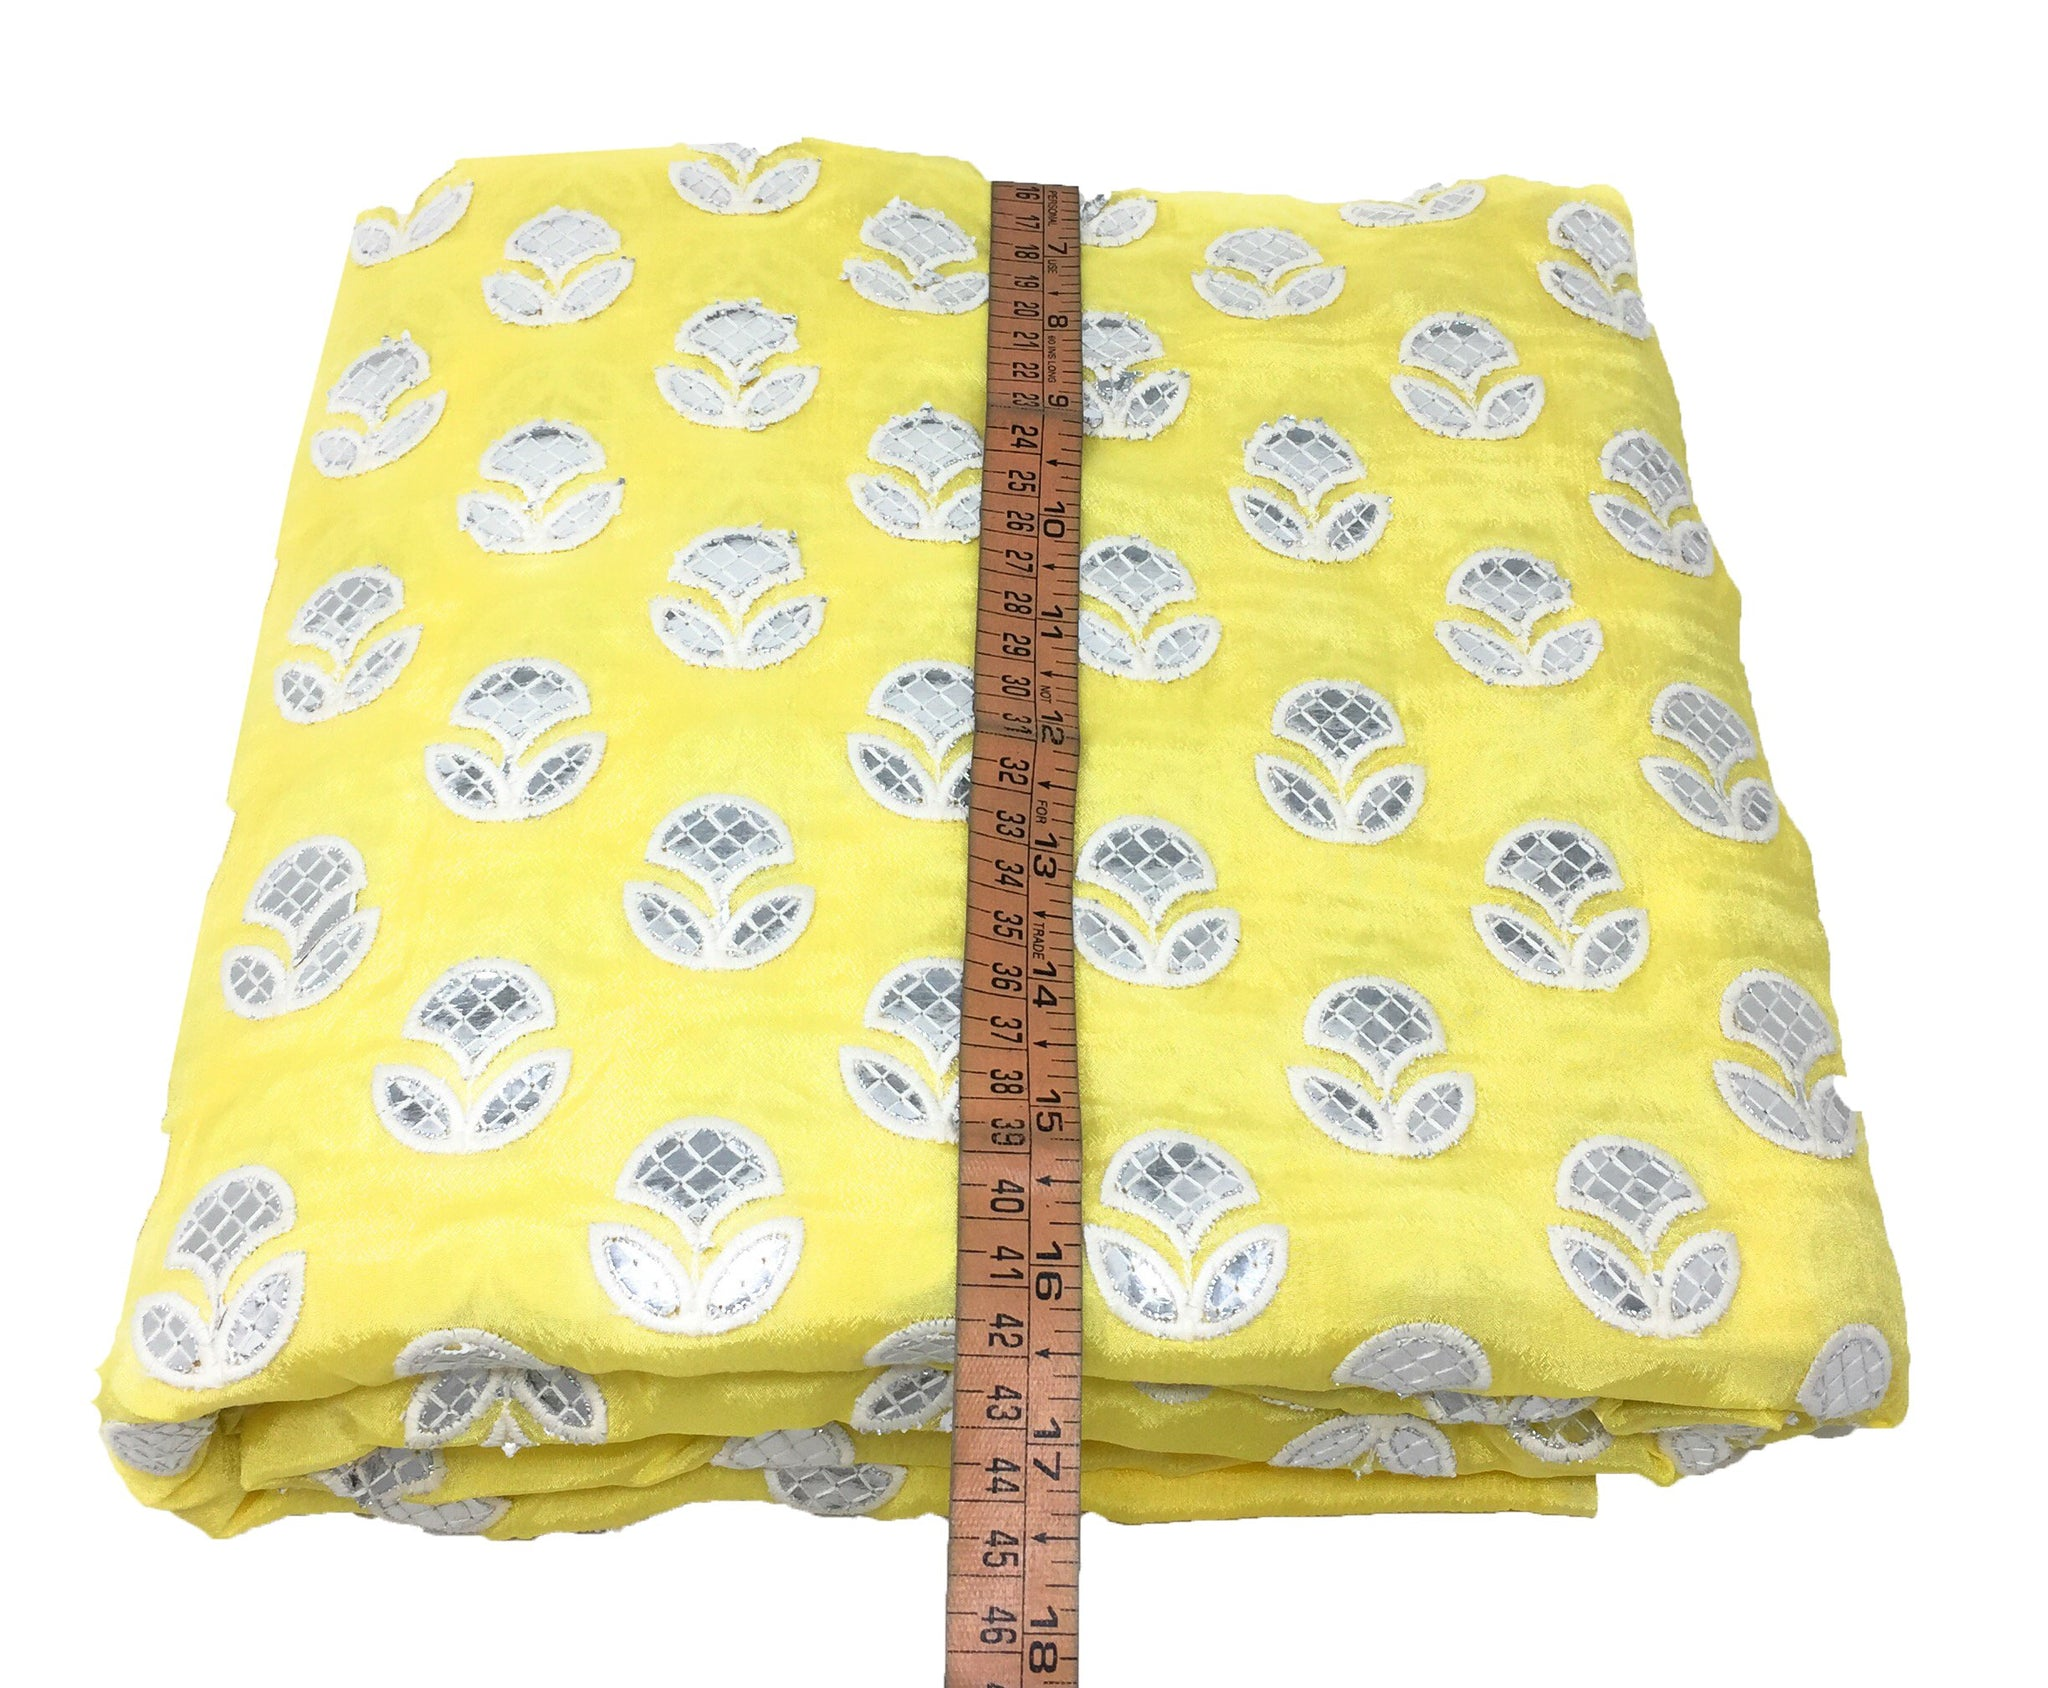 Silver Gota Patti Work On Yellow Chiffon Fabric Cloth Material Online - 1.5 Meter